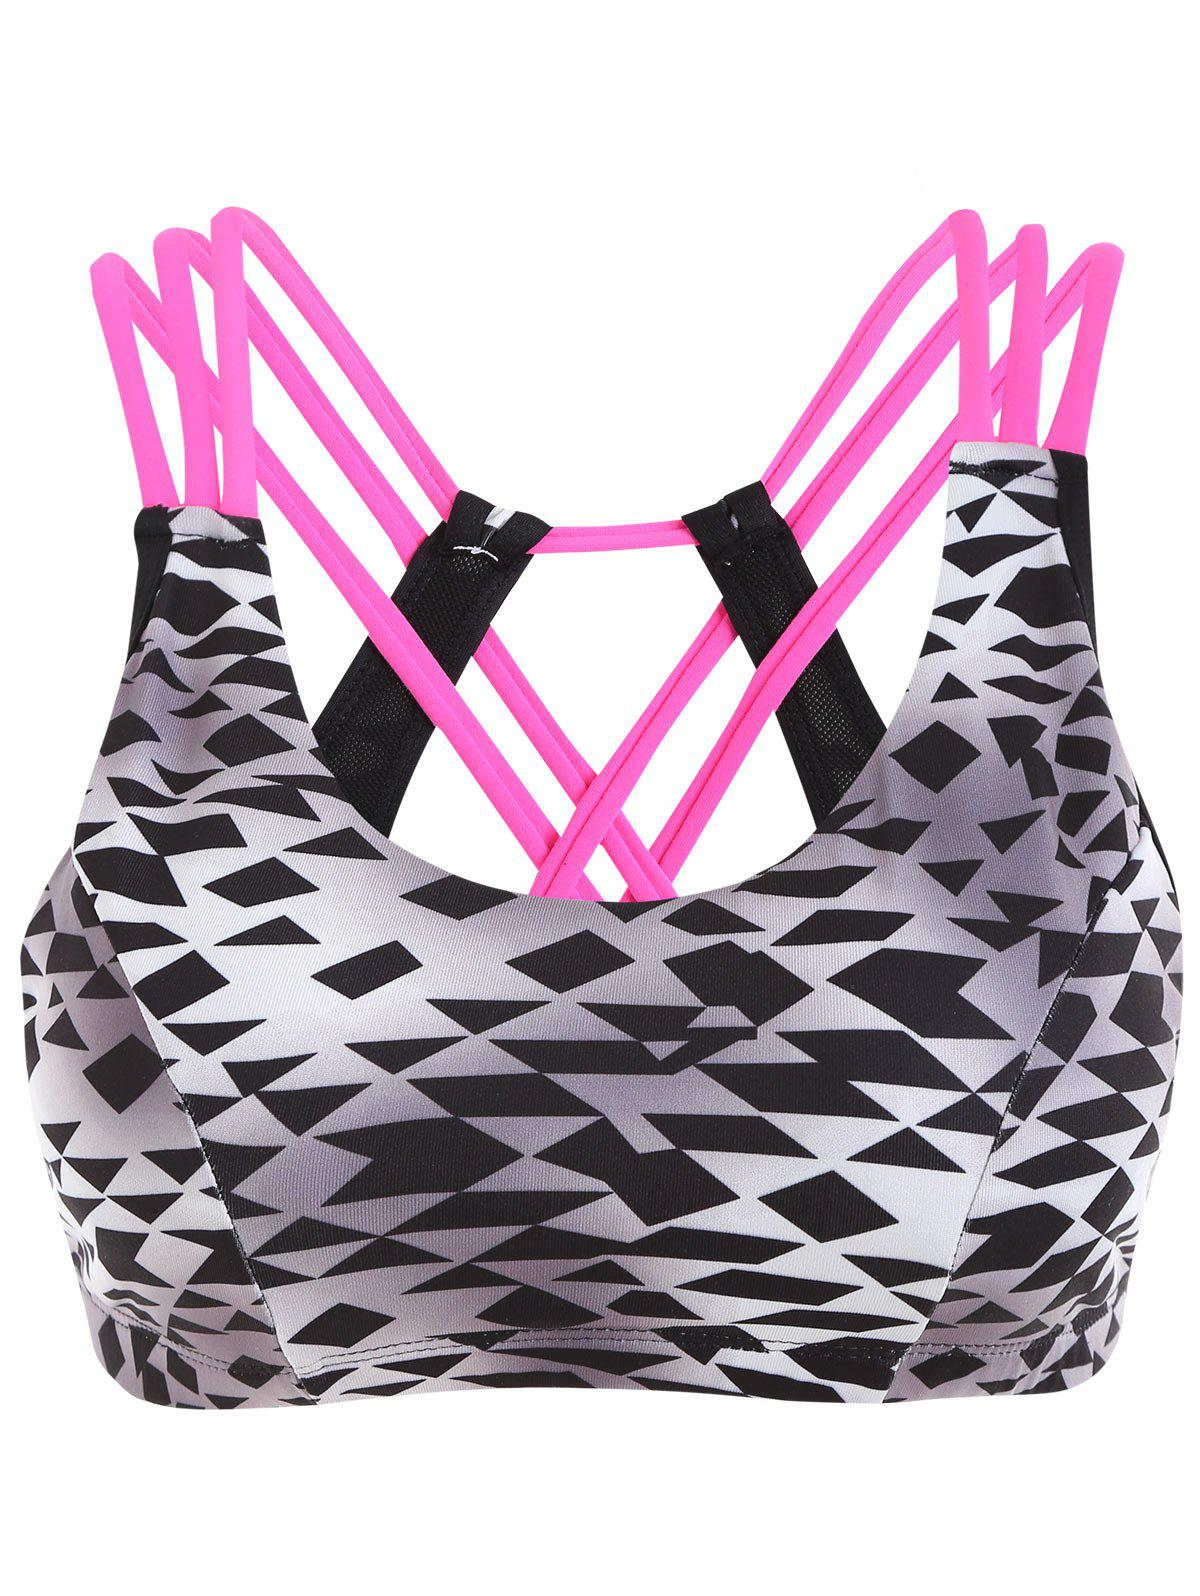 Geometric Print Strappy Sporty BraWOMEN<br><br>Size: S; Color: BLACK AND GREY; Materials: Nylon,Spandex; Bra Style: Padded; Cup Shape: 5/8 Cup; Support Type: Wire Free; Strap Type: Non-adjusted Straps; Closure Style: None; Pattern Type: Geometric; Embellishment: None; Weight: 0.1800kg; Package Contents: 1 x Bra;